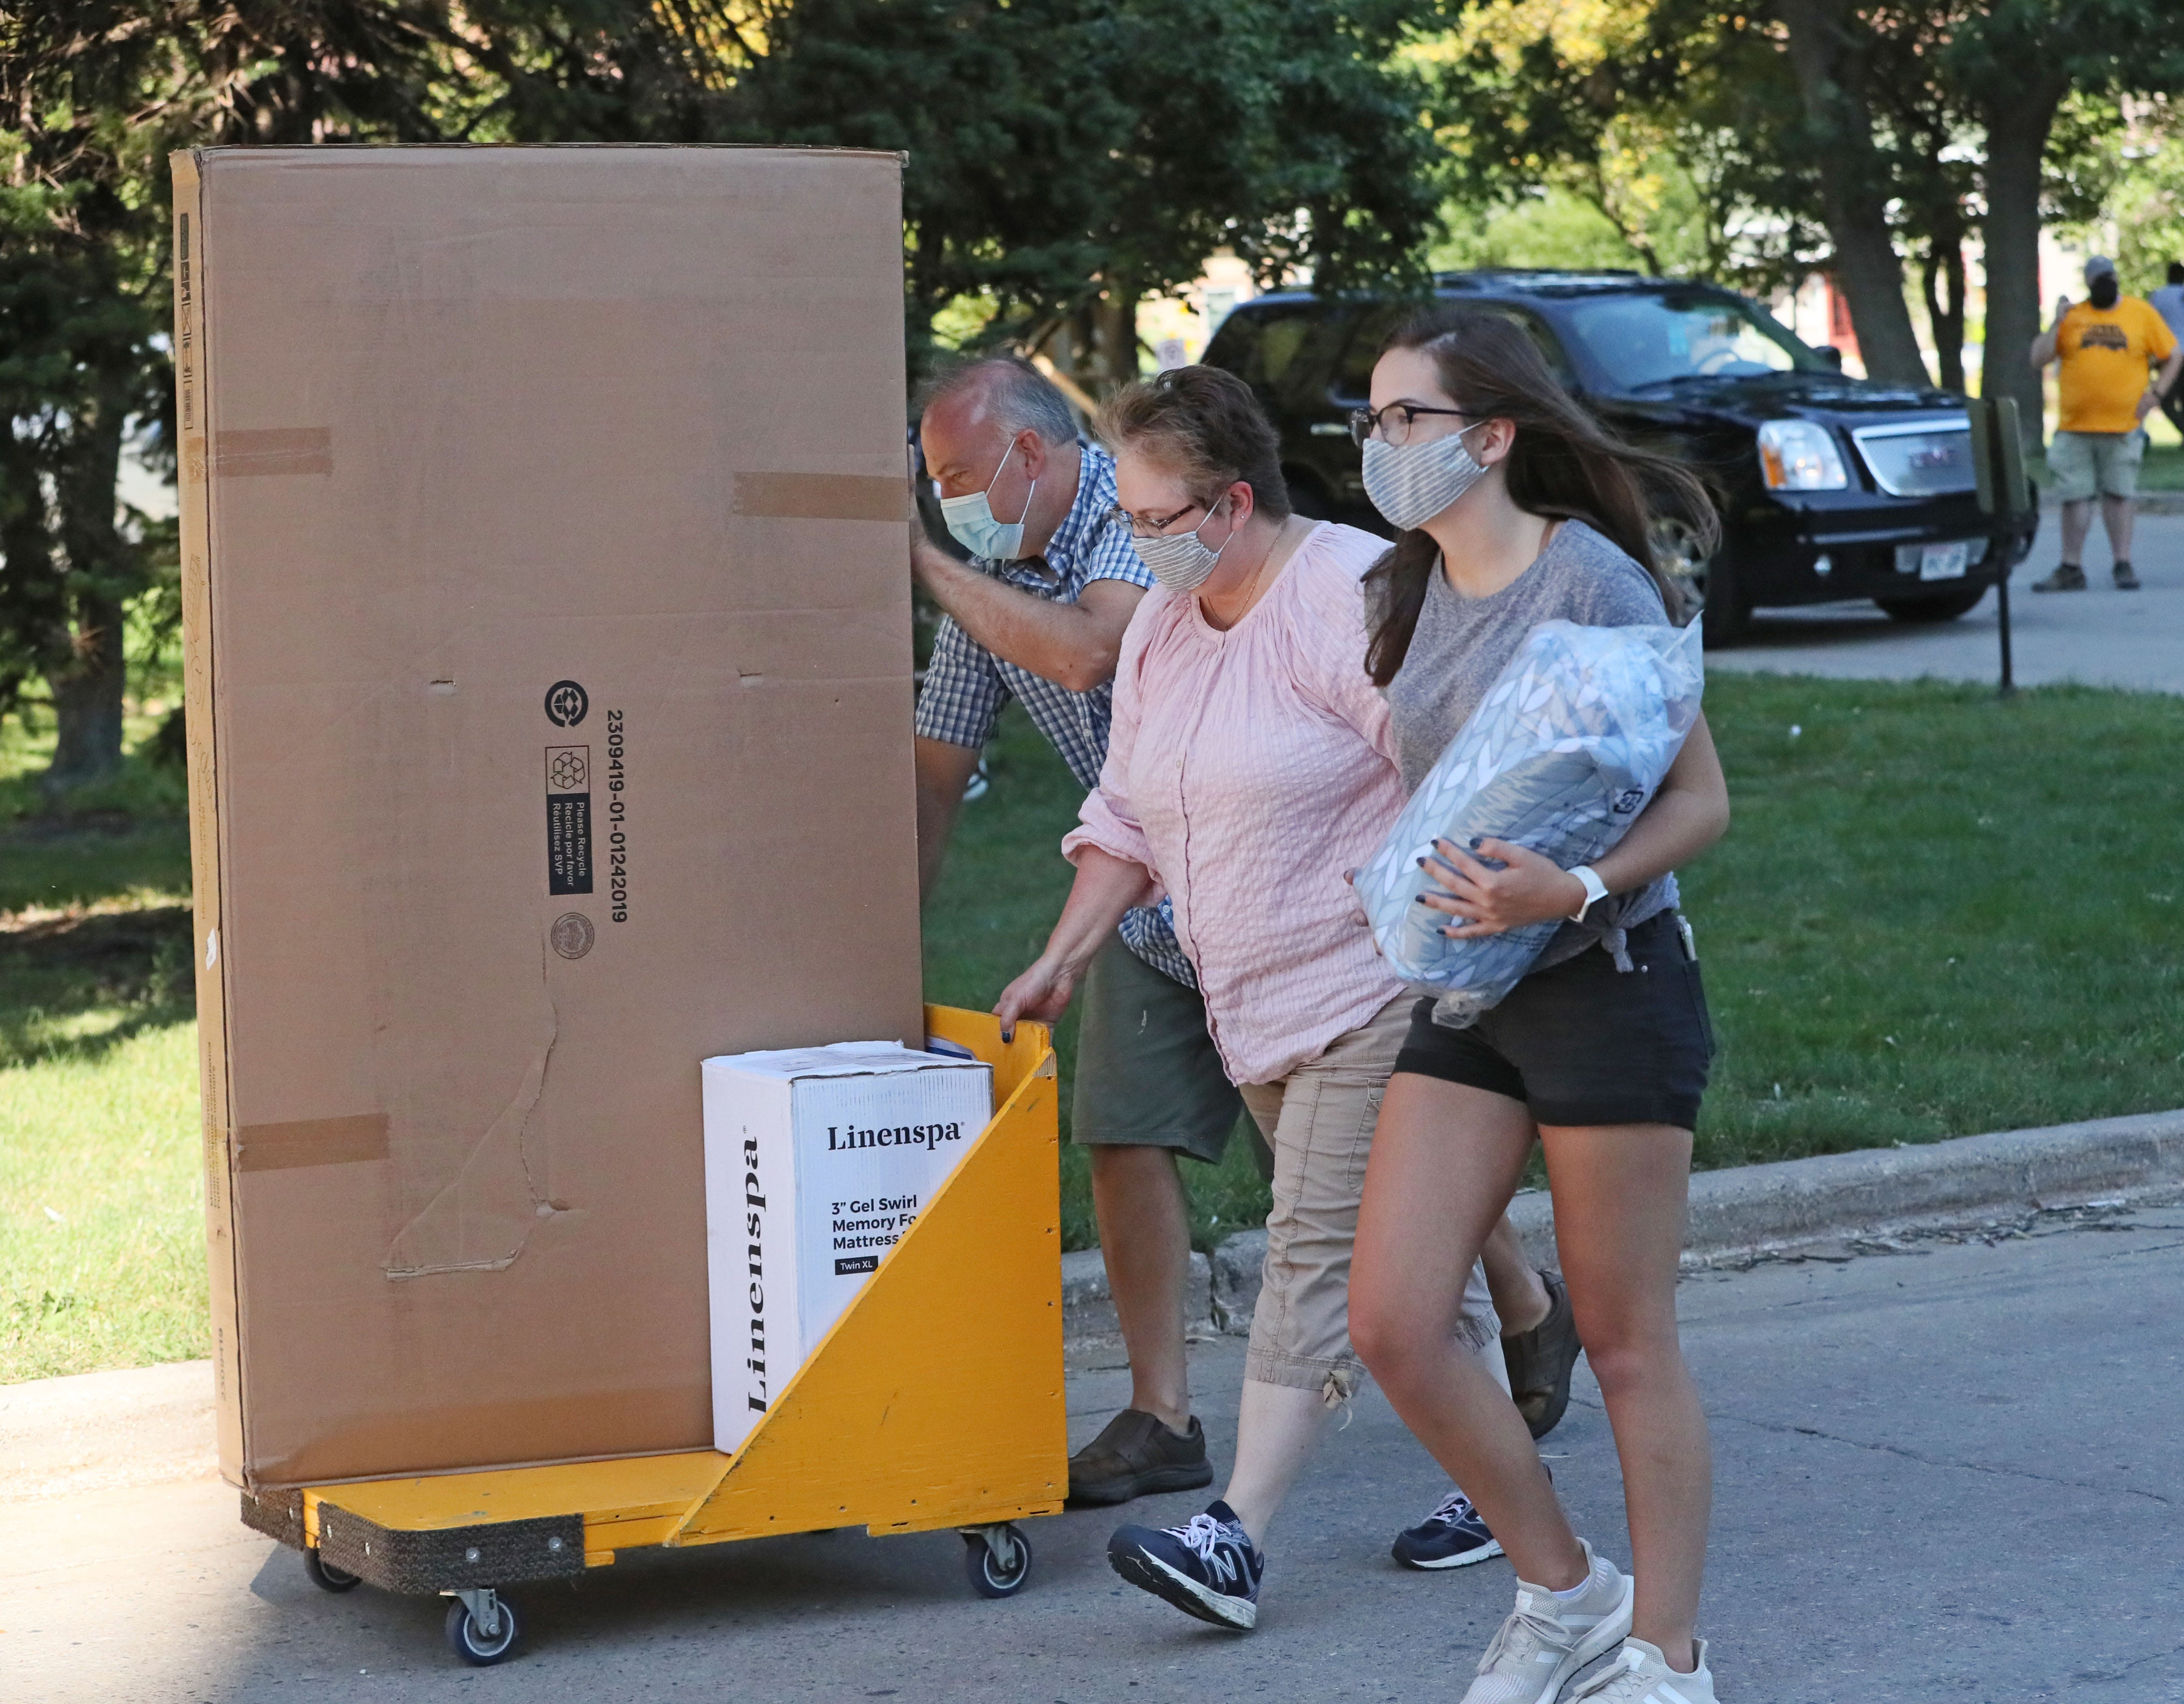 Freshman Makenna Mohr, right, of Green Bay and her parents, Dale Mohr, left, and Donica Mohr, help her move her belongings into the UW-Milwaukee's Sandburg Residence Hall.